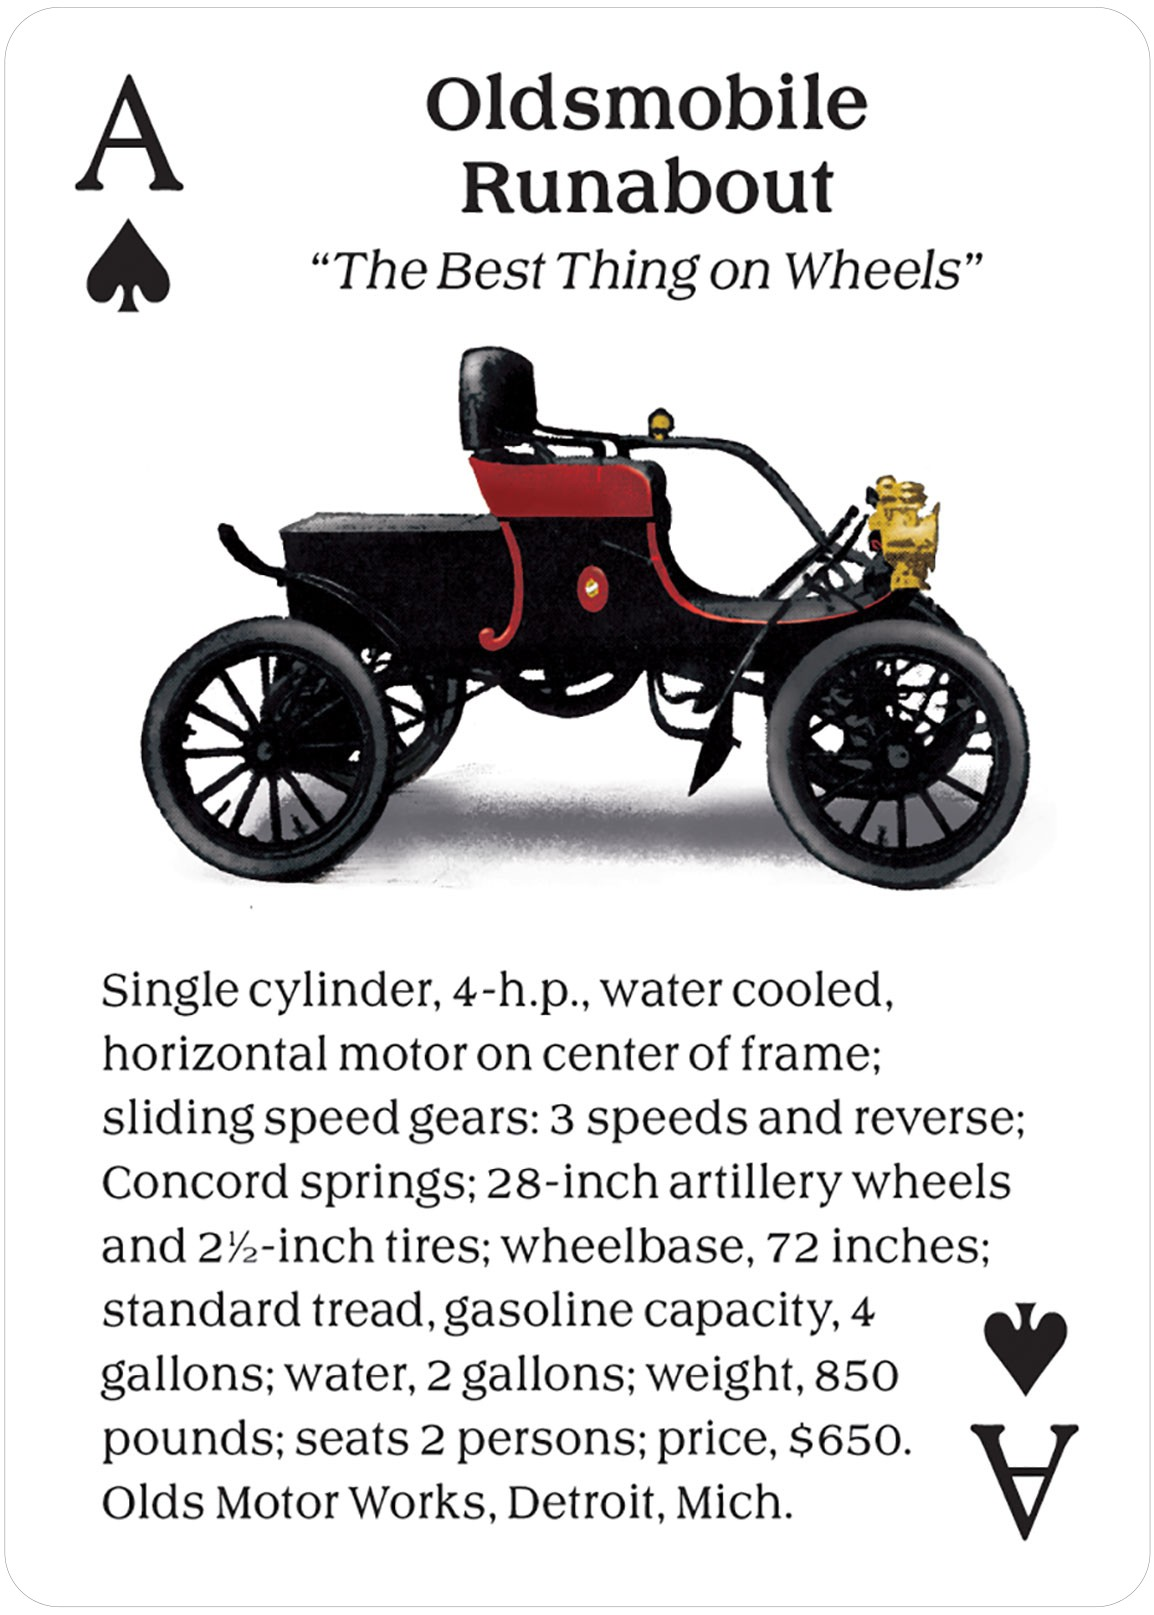 Turn of the Century Motor Cars